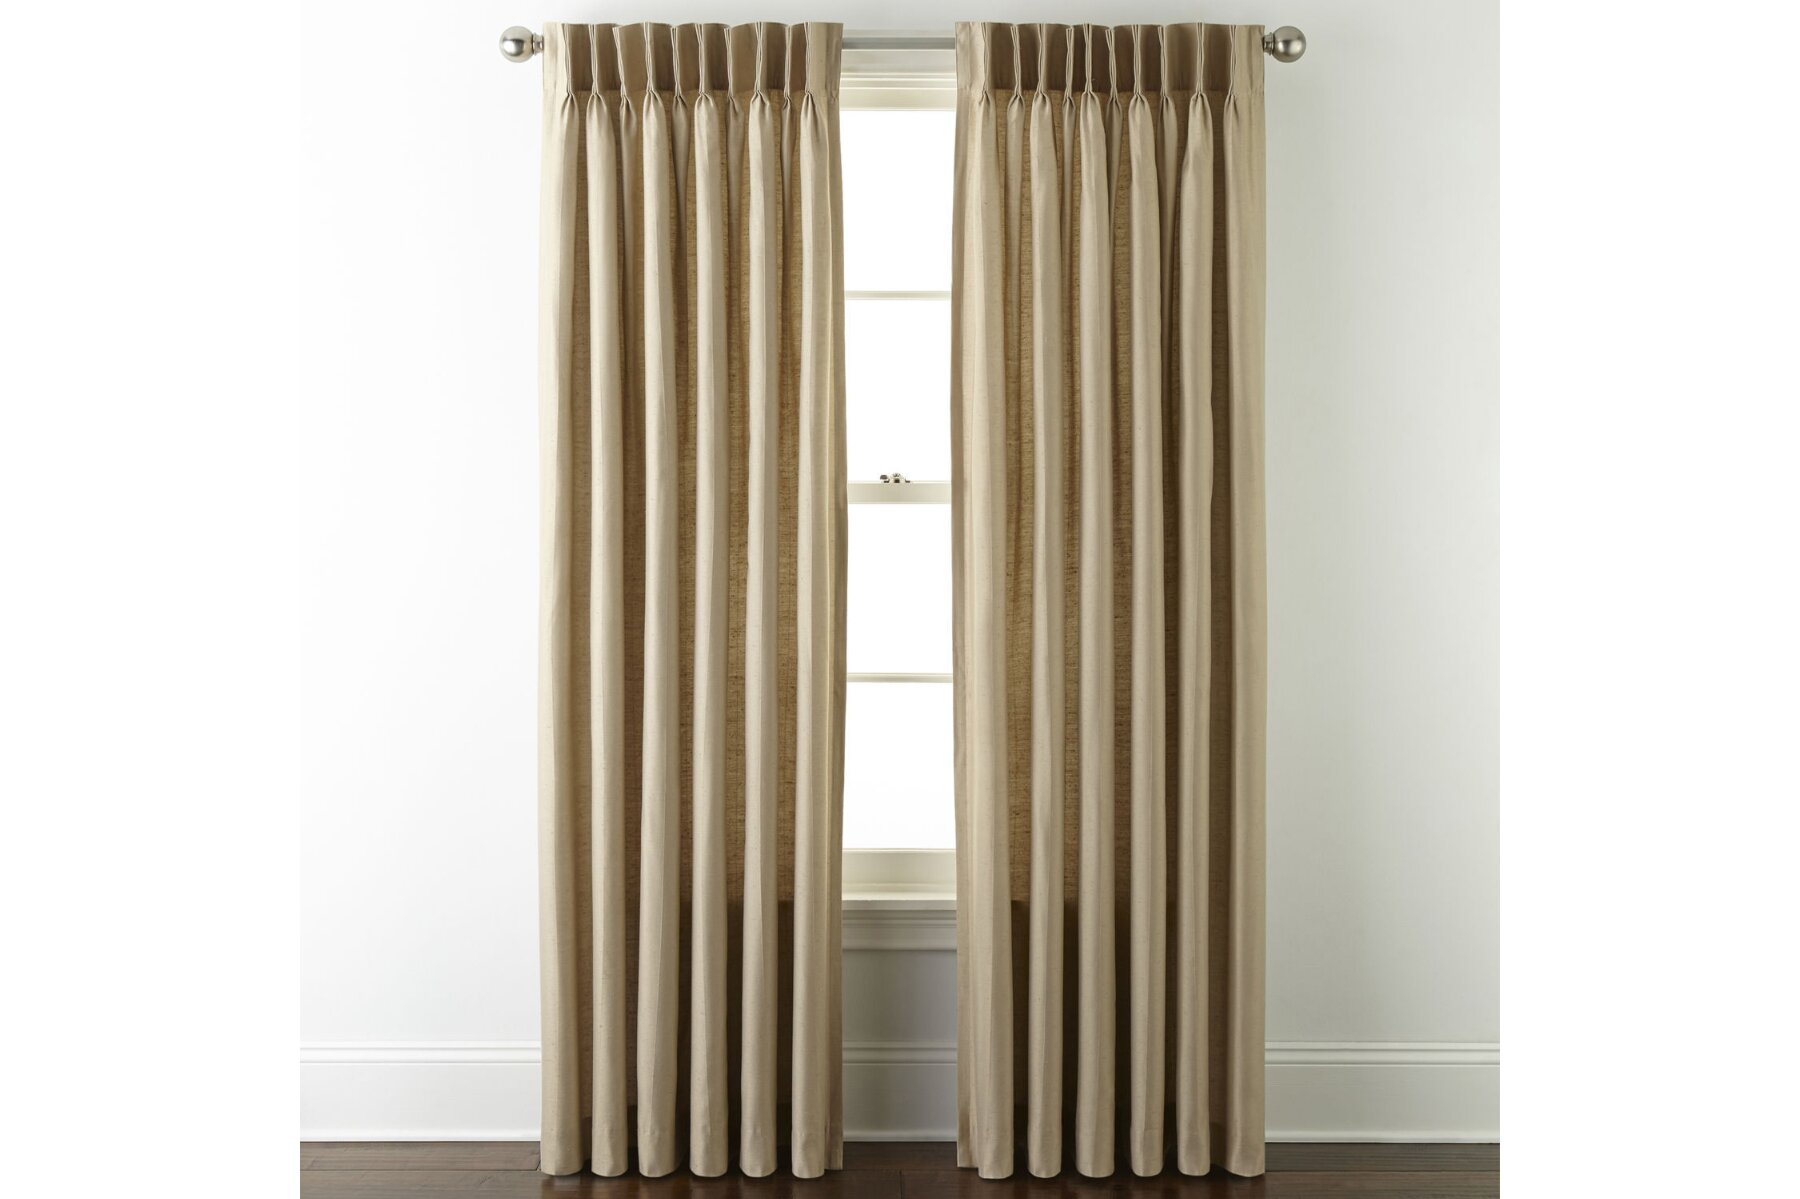 jcpenney home supreme pinch pleat 75 inches width x 95 inches length curtain panel linen new without tags